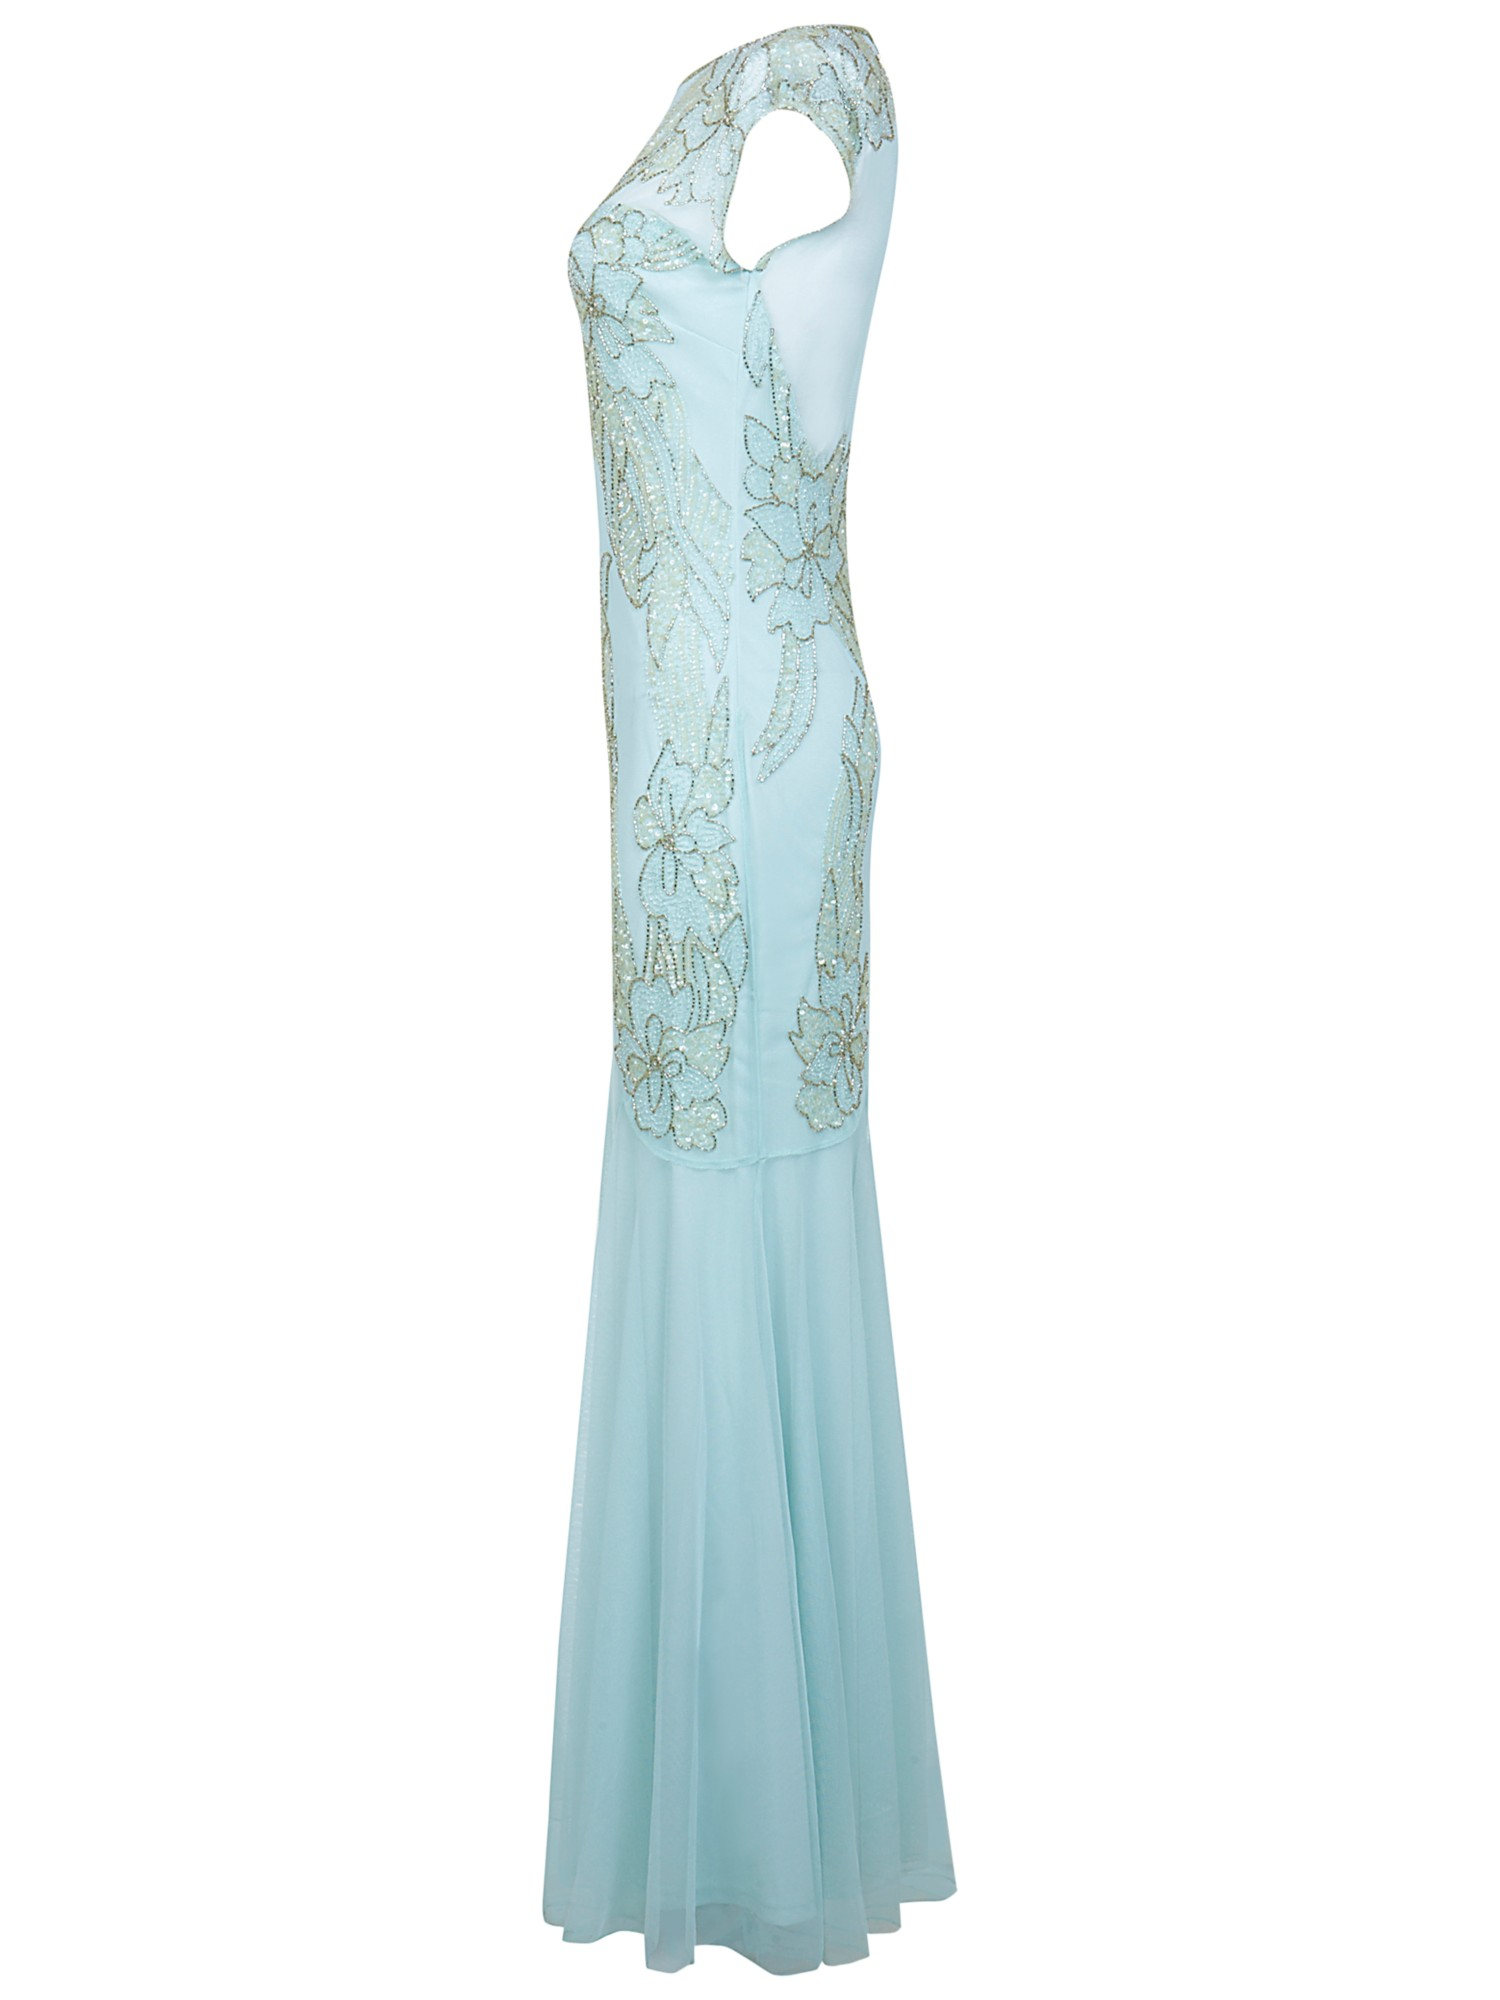 Famous Prom Dresses Selfridges Collection - All Wedding Dresses ...